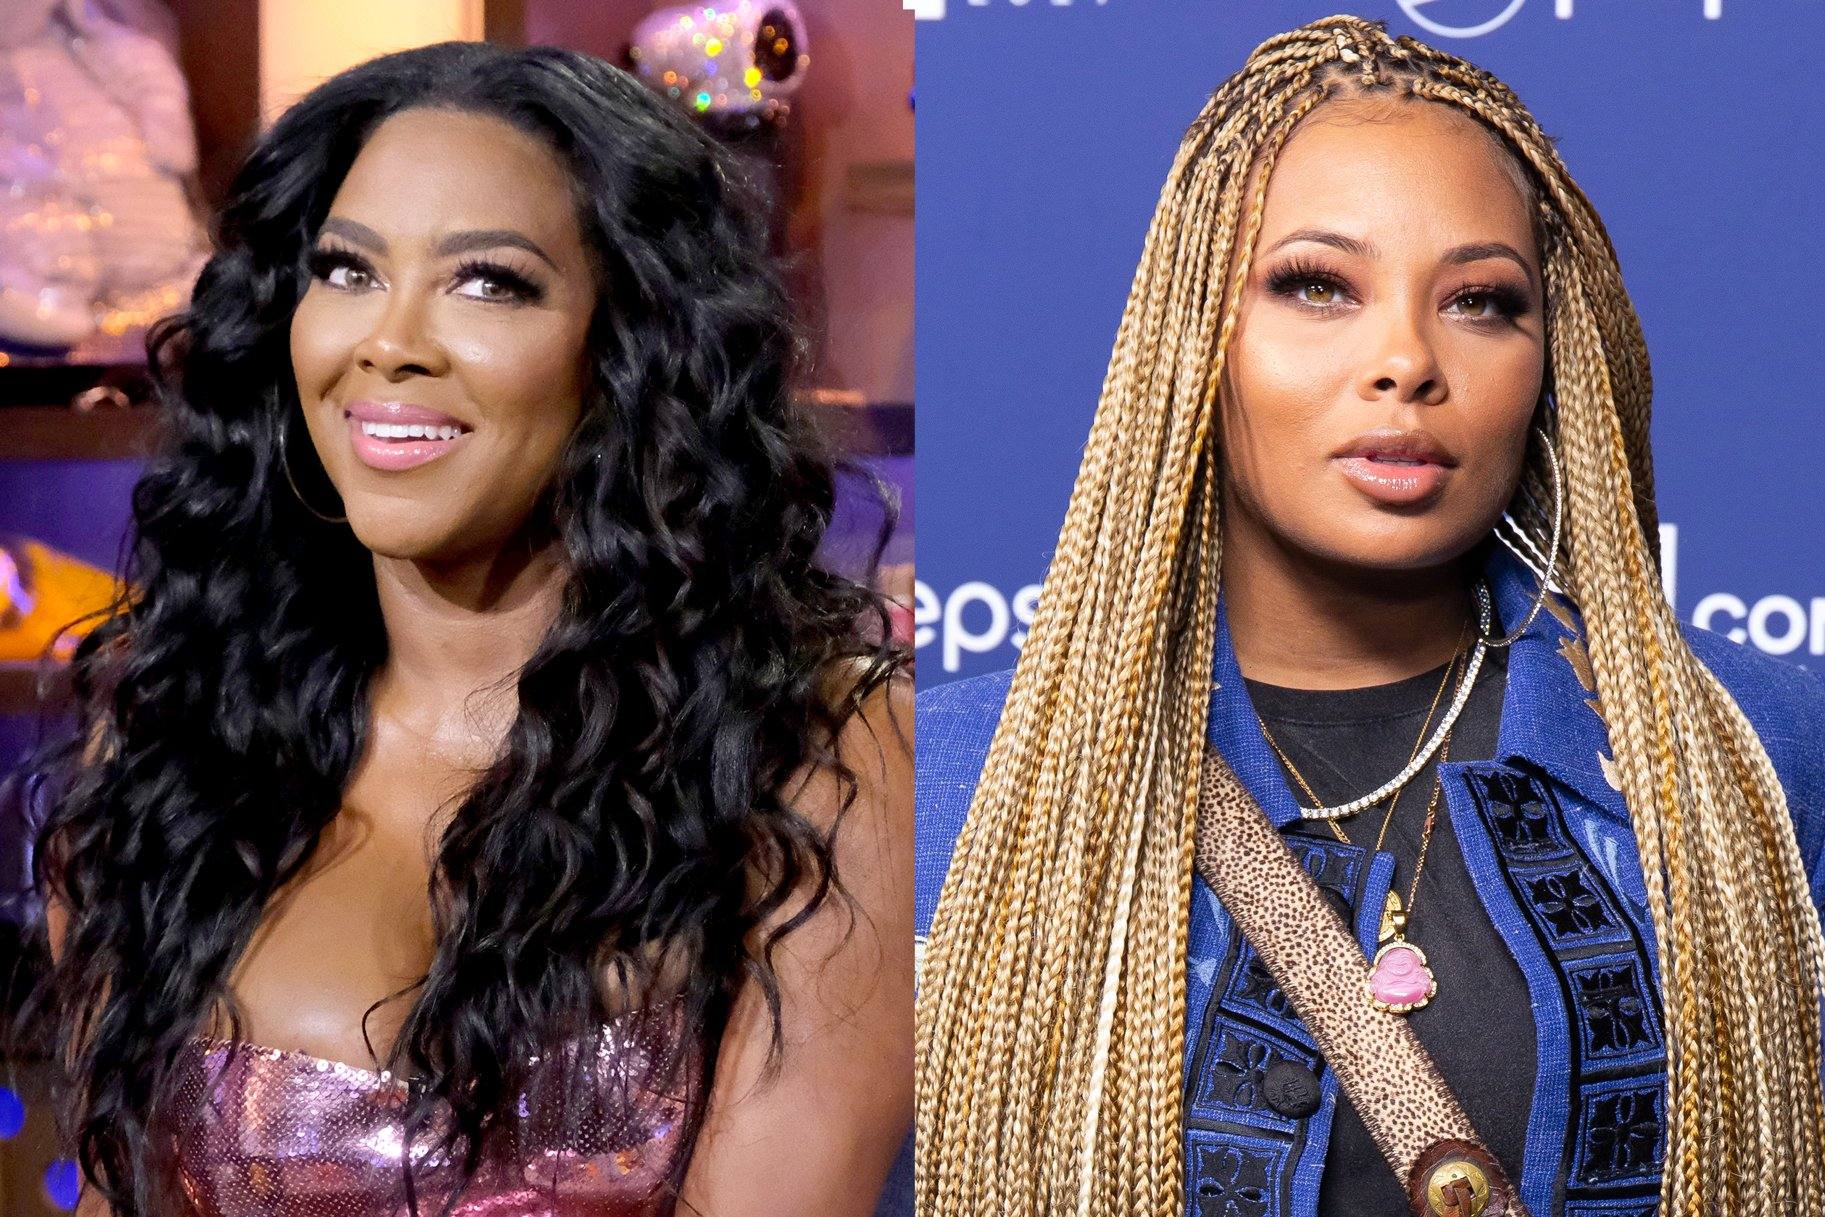 Kenya Moore Shares The Sweetest Photo Of Her Daughter, Brooklyn Daly And Her BFF, Eva Marcille's Boy, Mikey